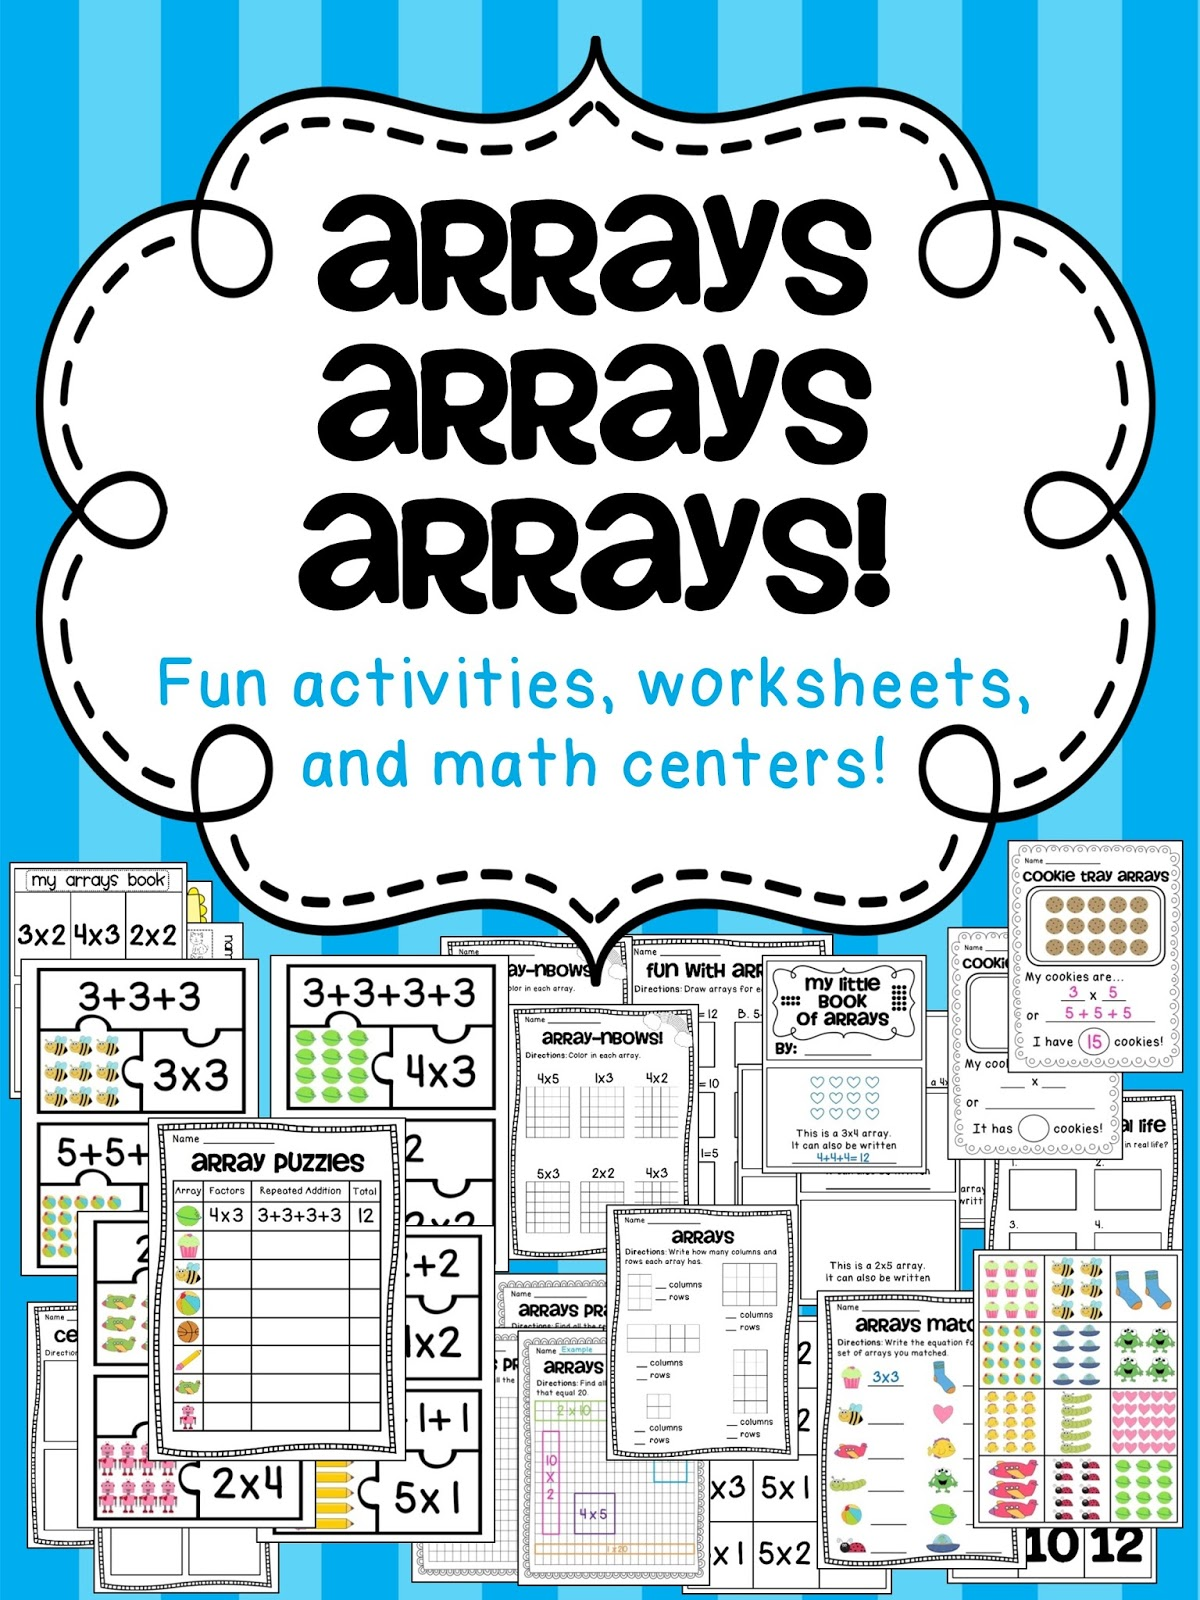 Miss Giraffes Class How to Teach Arrays – Multiplication Array Worksheet